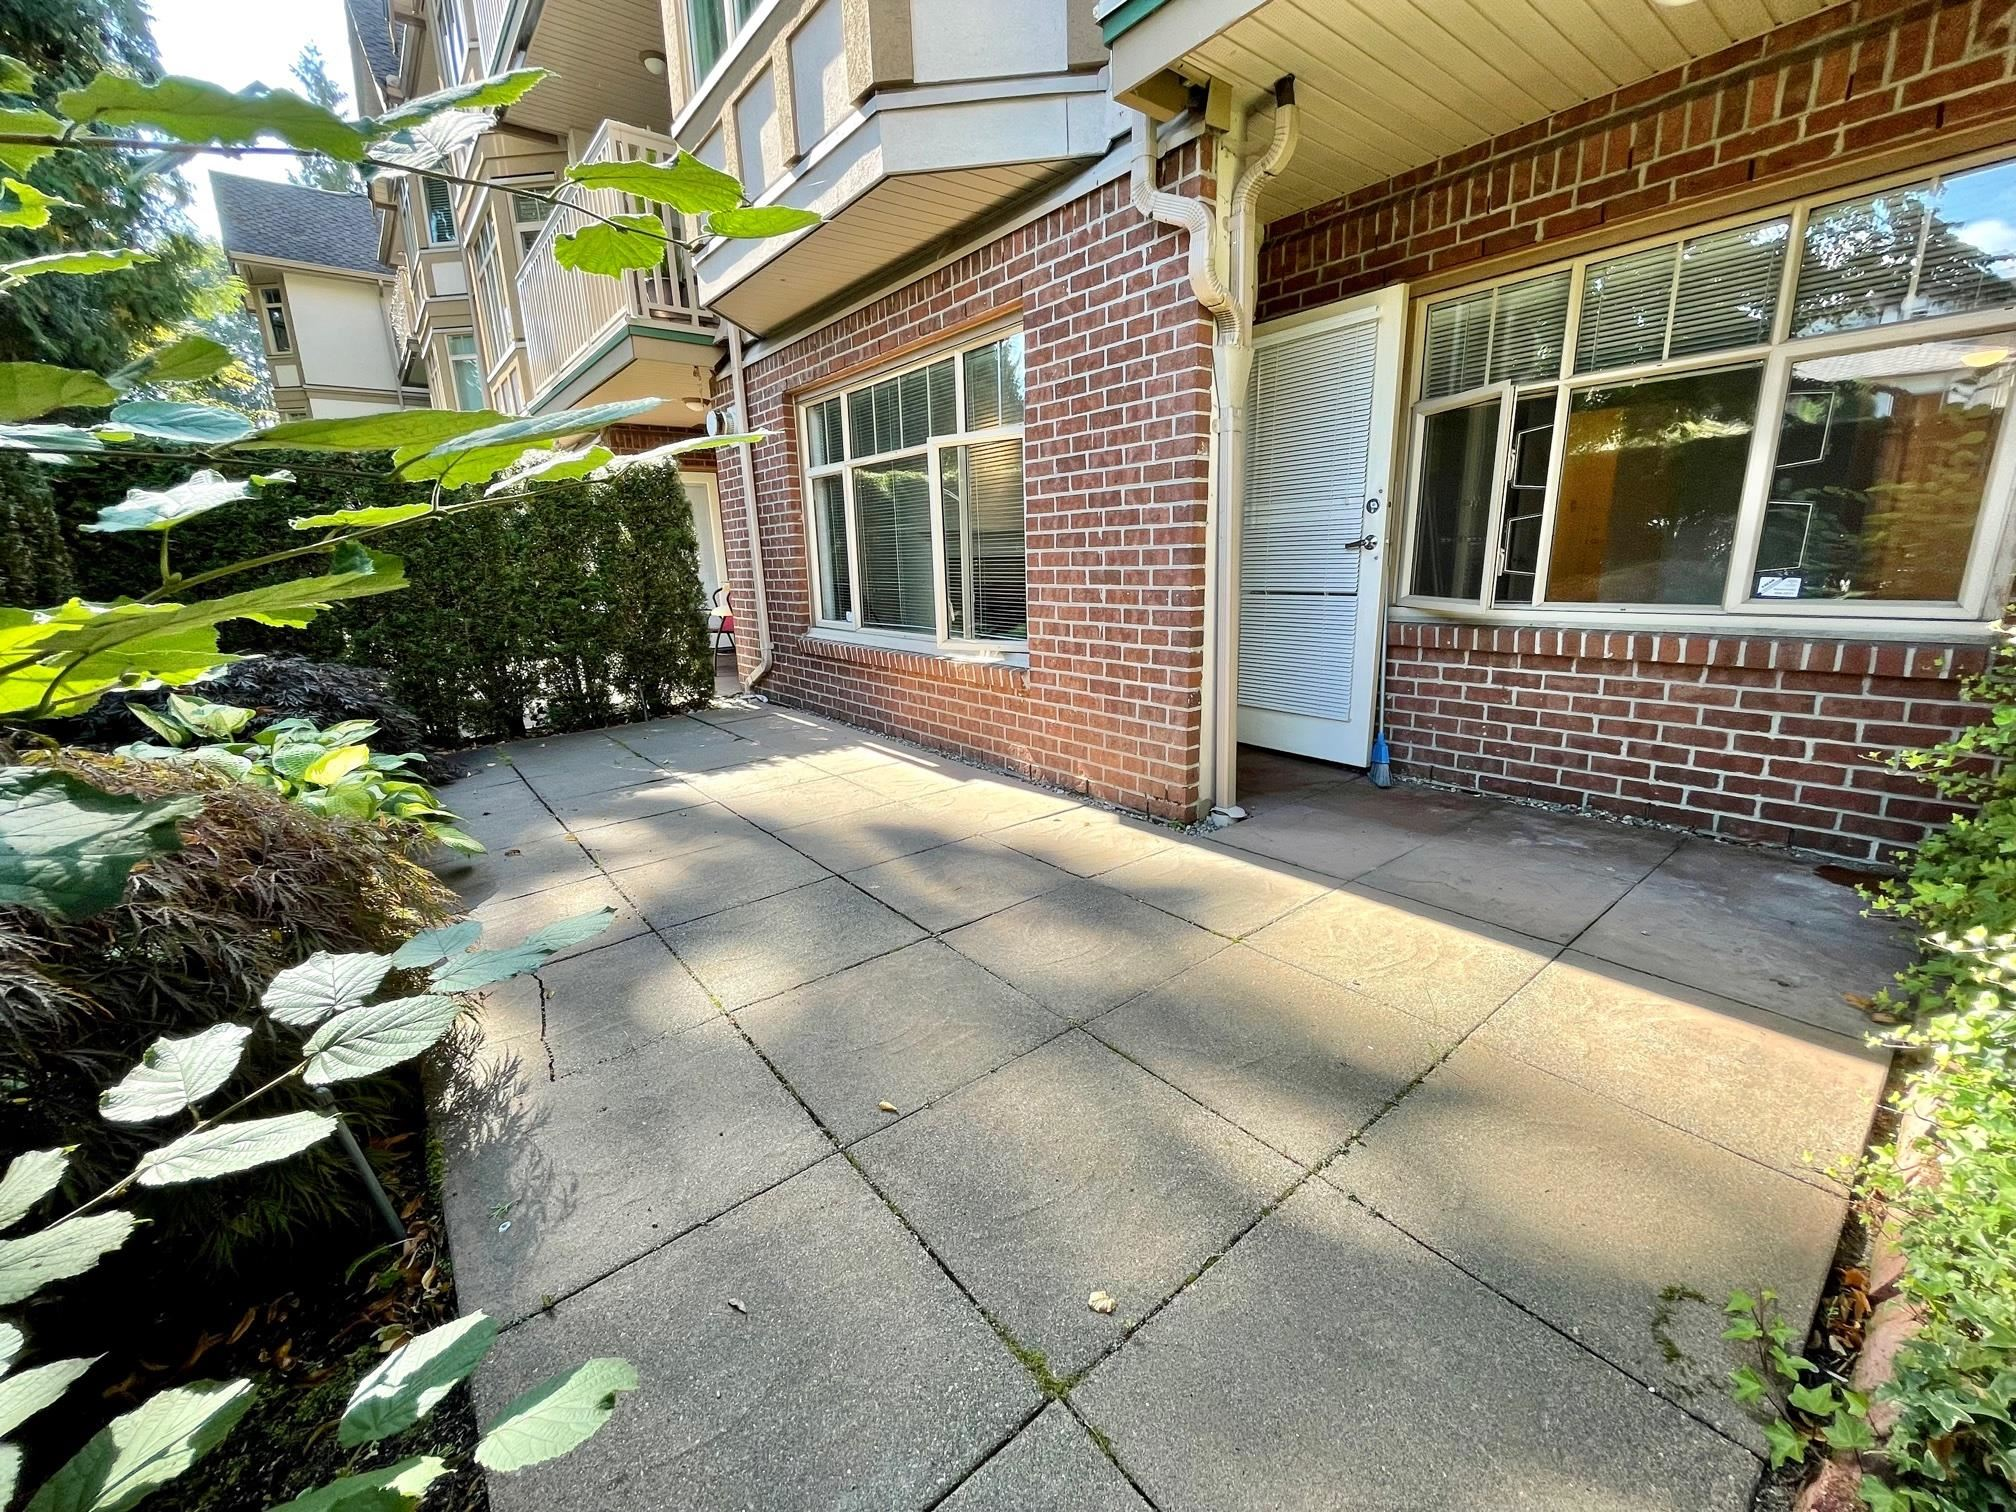 307 2059 CHESTERFIELD AVENUE - Central Lonsdale Apartment/Condo for sale, 1 Bedroom (R2618308) - #20